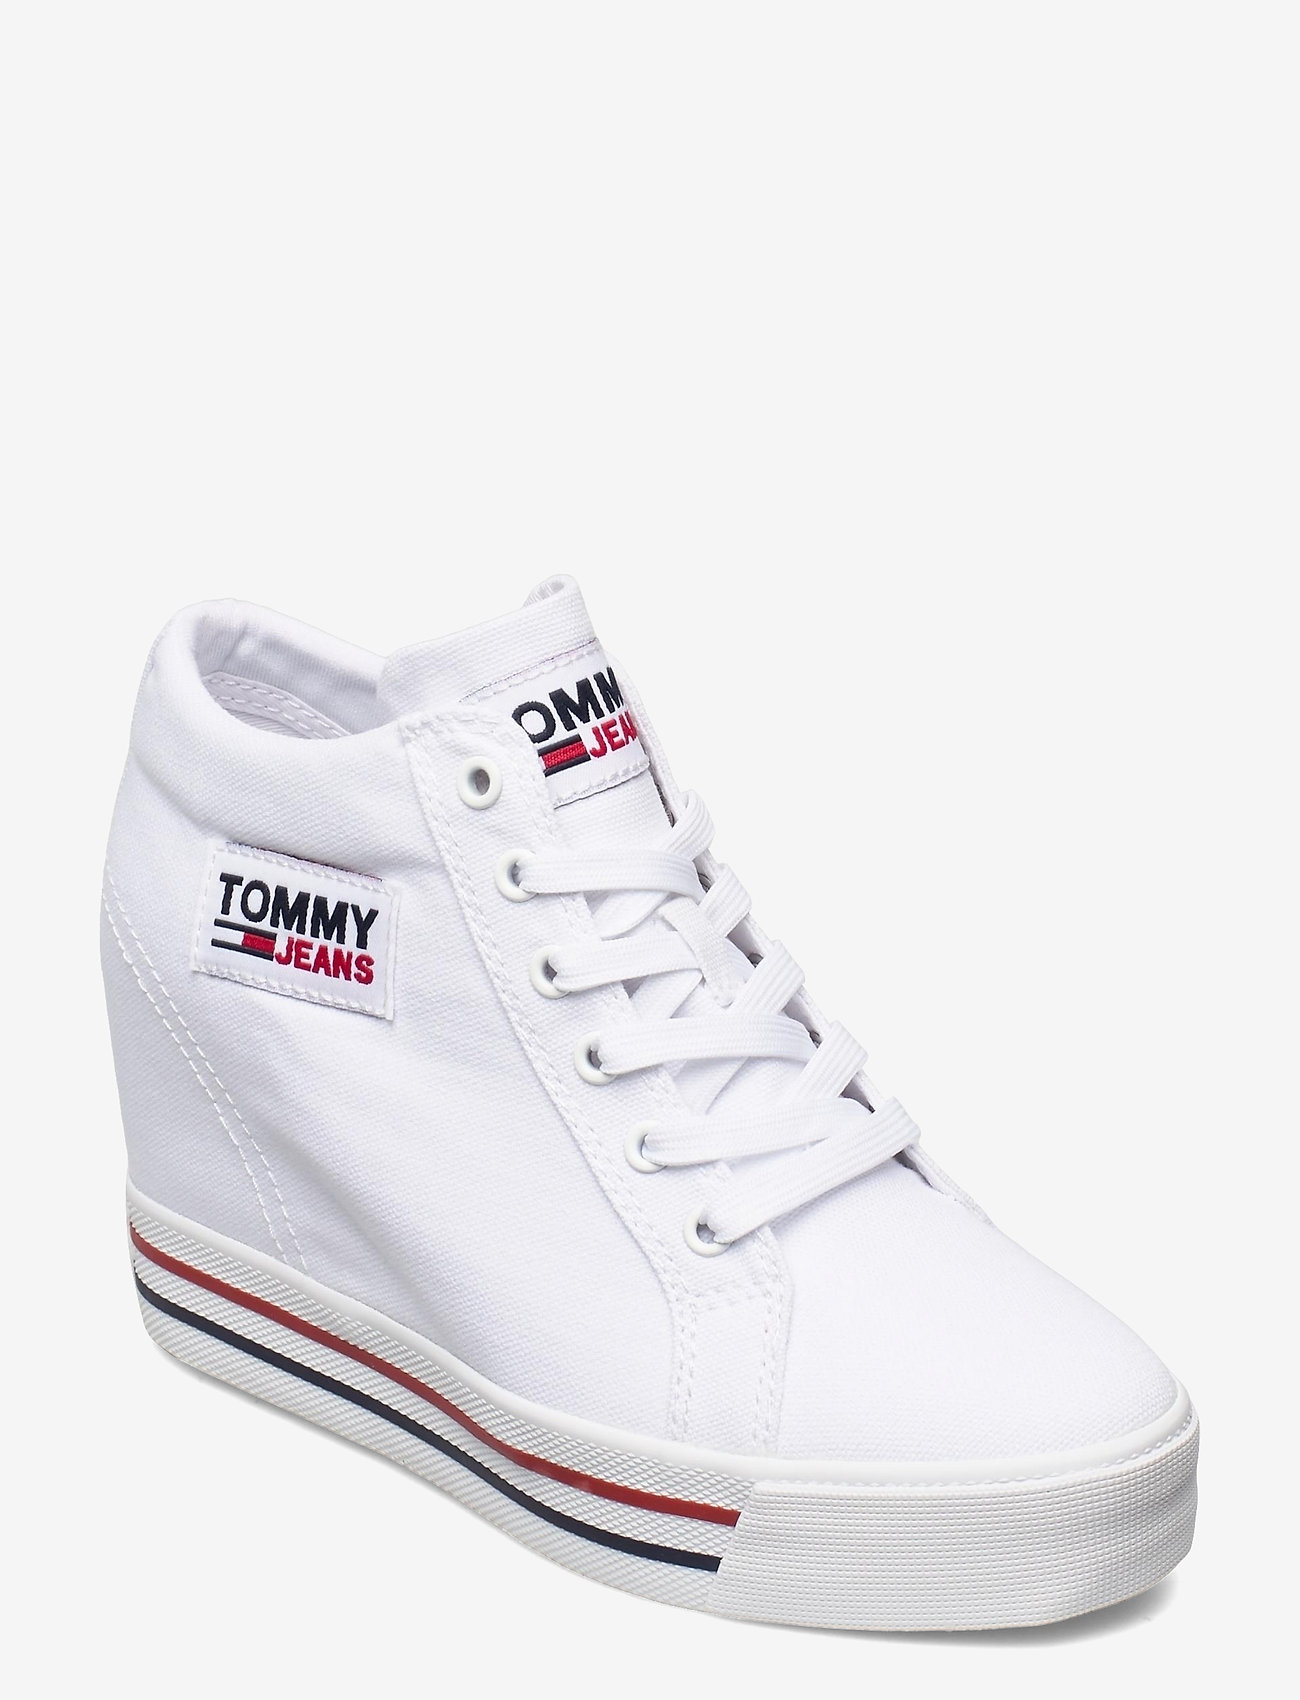 Tommy Hilfiger - TOMMY JEANS WEDGE SNEAKER - hoge sneakers - white - 0